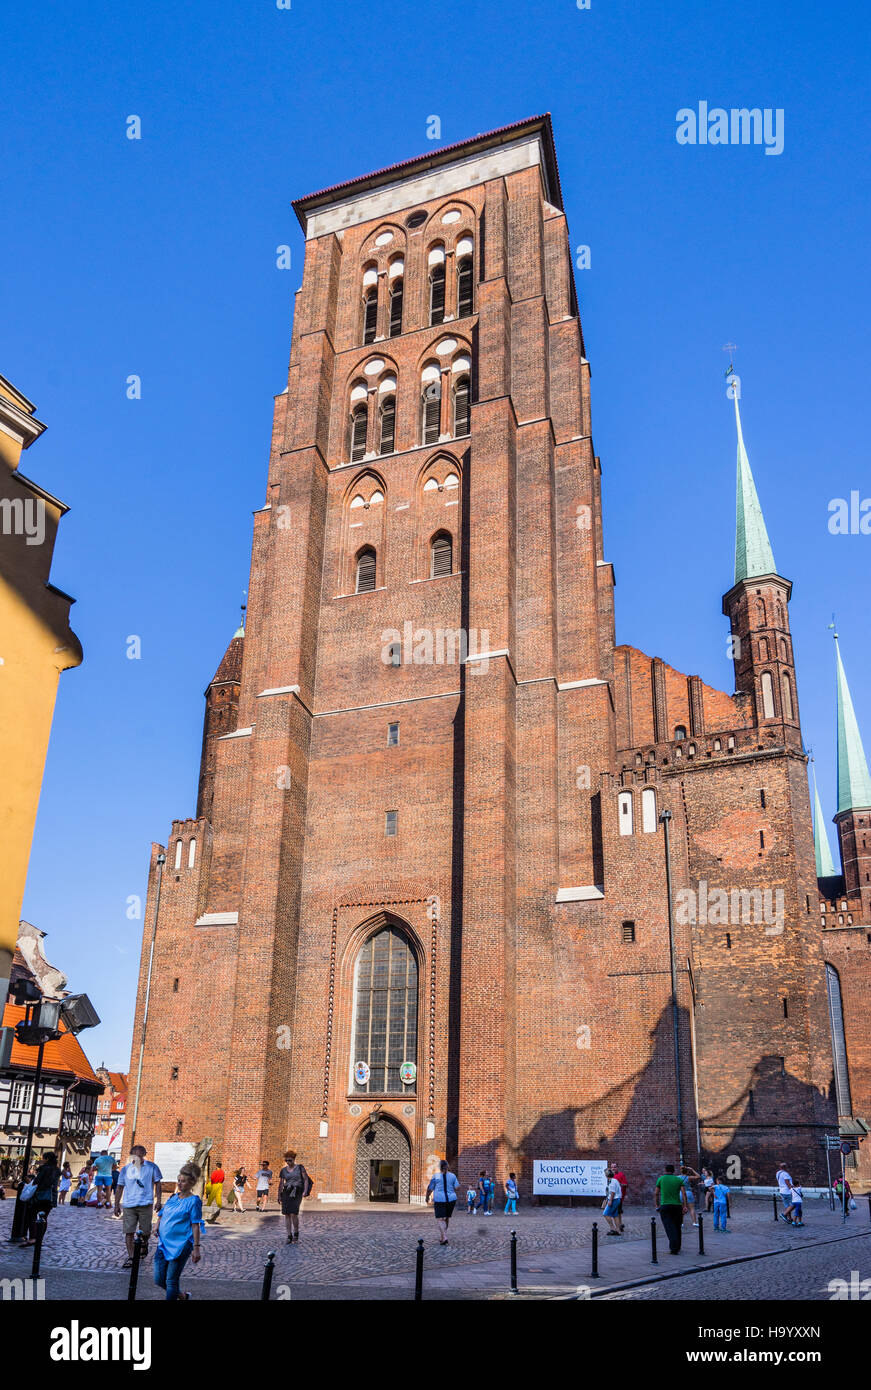 Poland, Pomerania, Gdansk (Danzig), view of the massive tower of St. Mary's Church from Ulica Pivna (Jopengasse/Beer - Stock Image